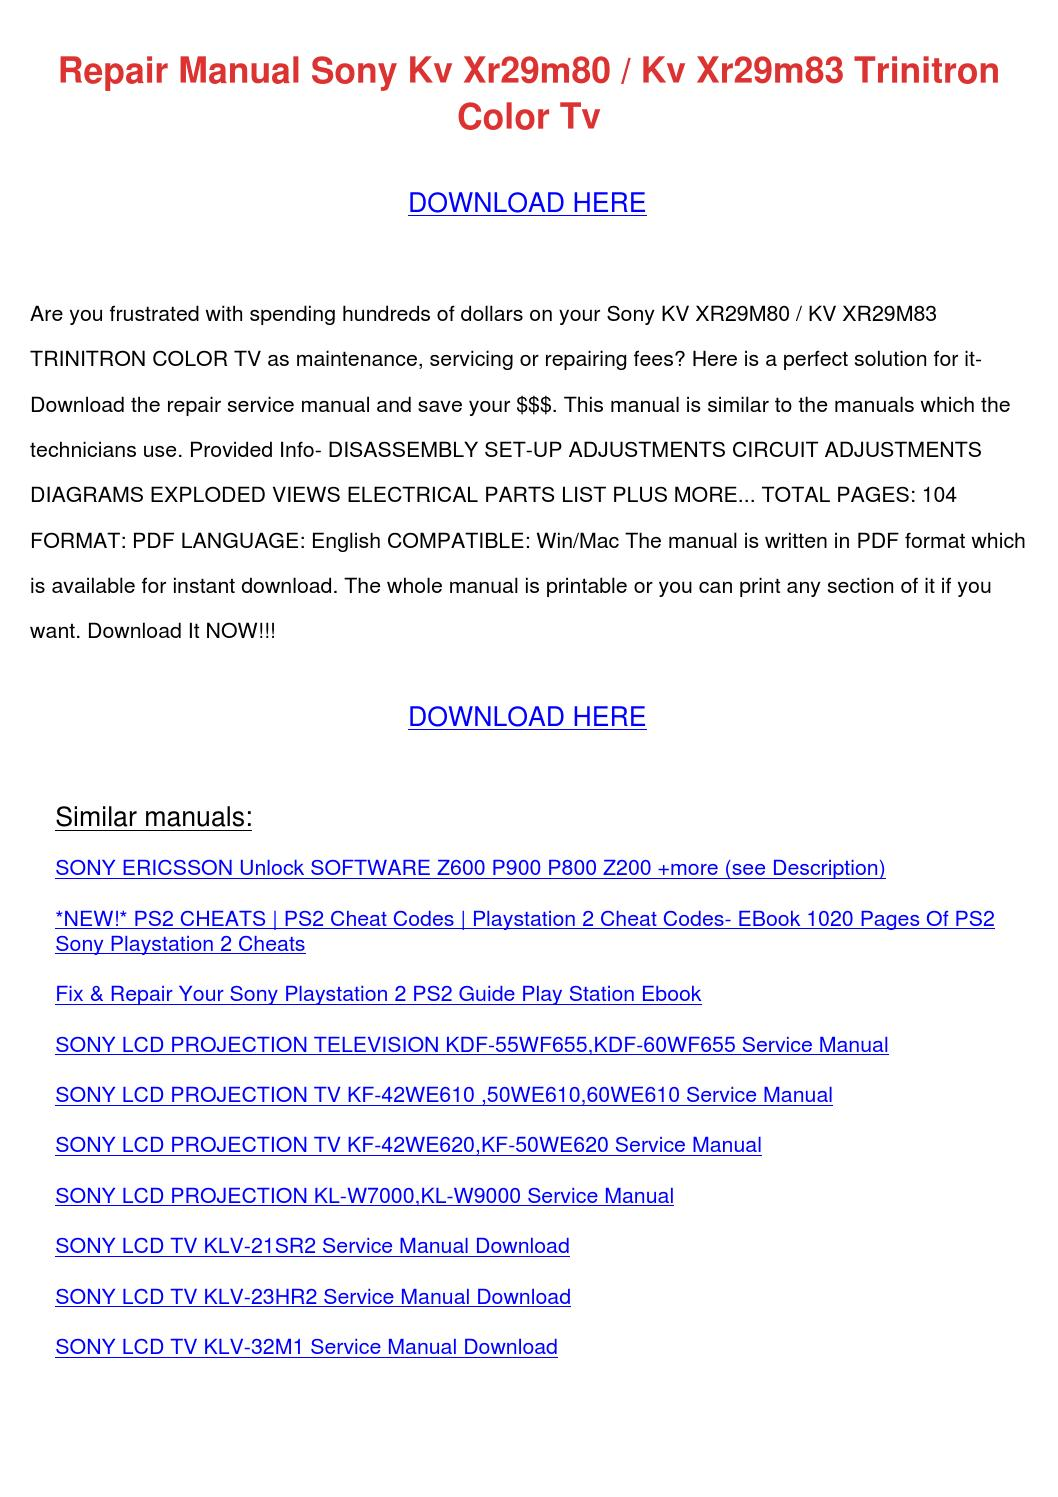 repair manual sony kv xr29m80 kv xr29m83 trin by kareemhobson issuu rh issuu com Sony Rear Projection TV Models Projection Television Brand